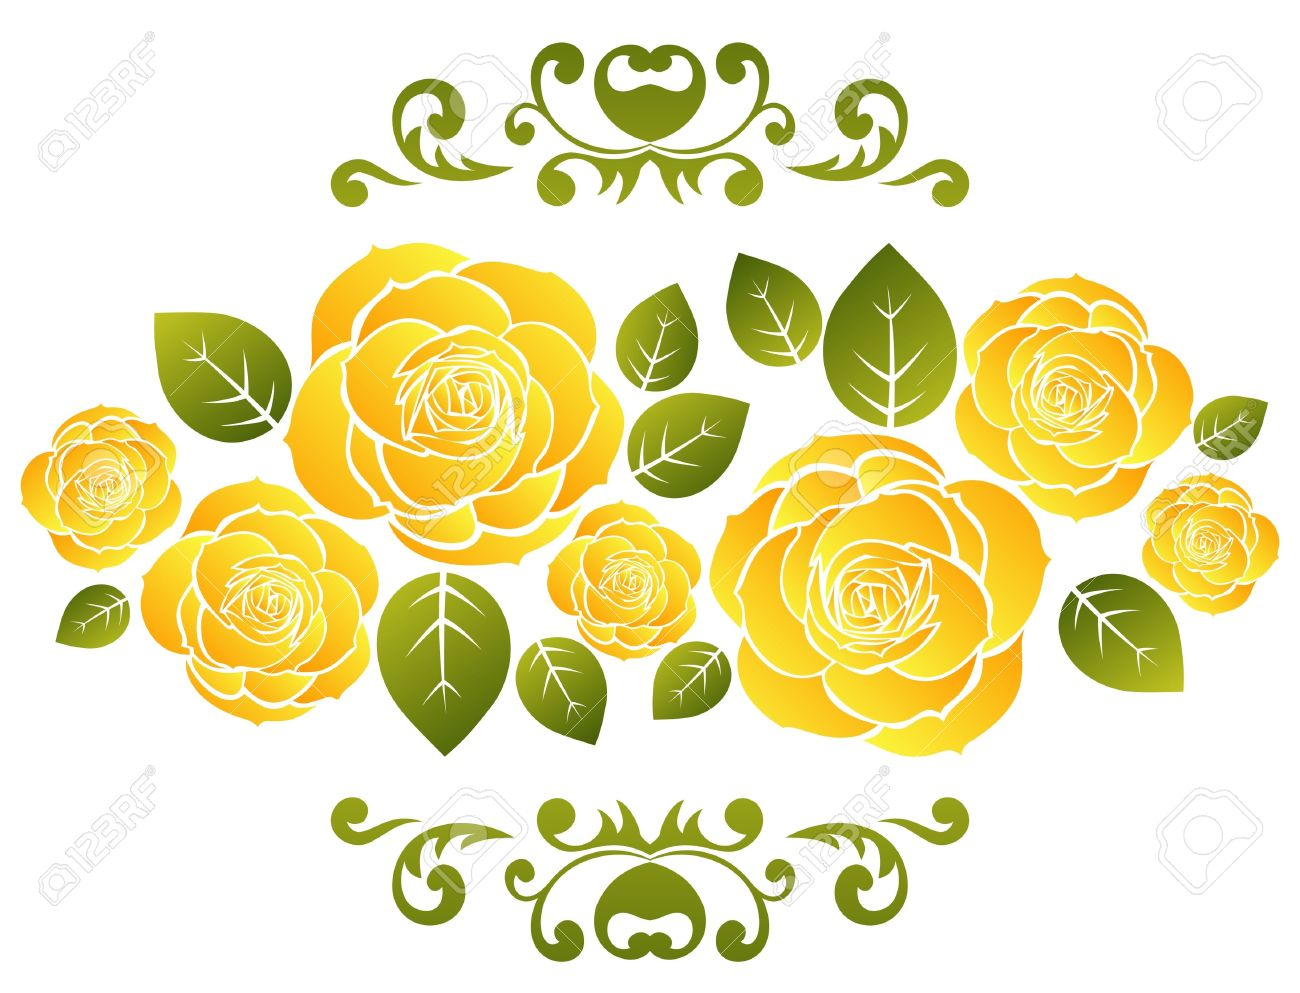 13,597 Yellow Rose Stock Vector Illustration And Royalty Free.